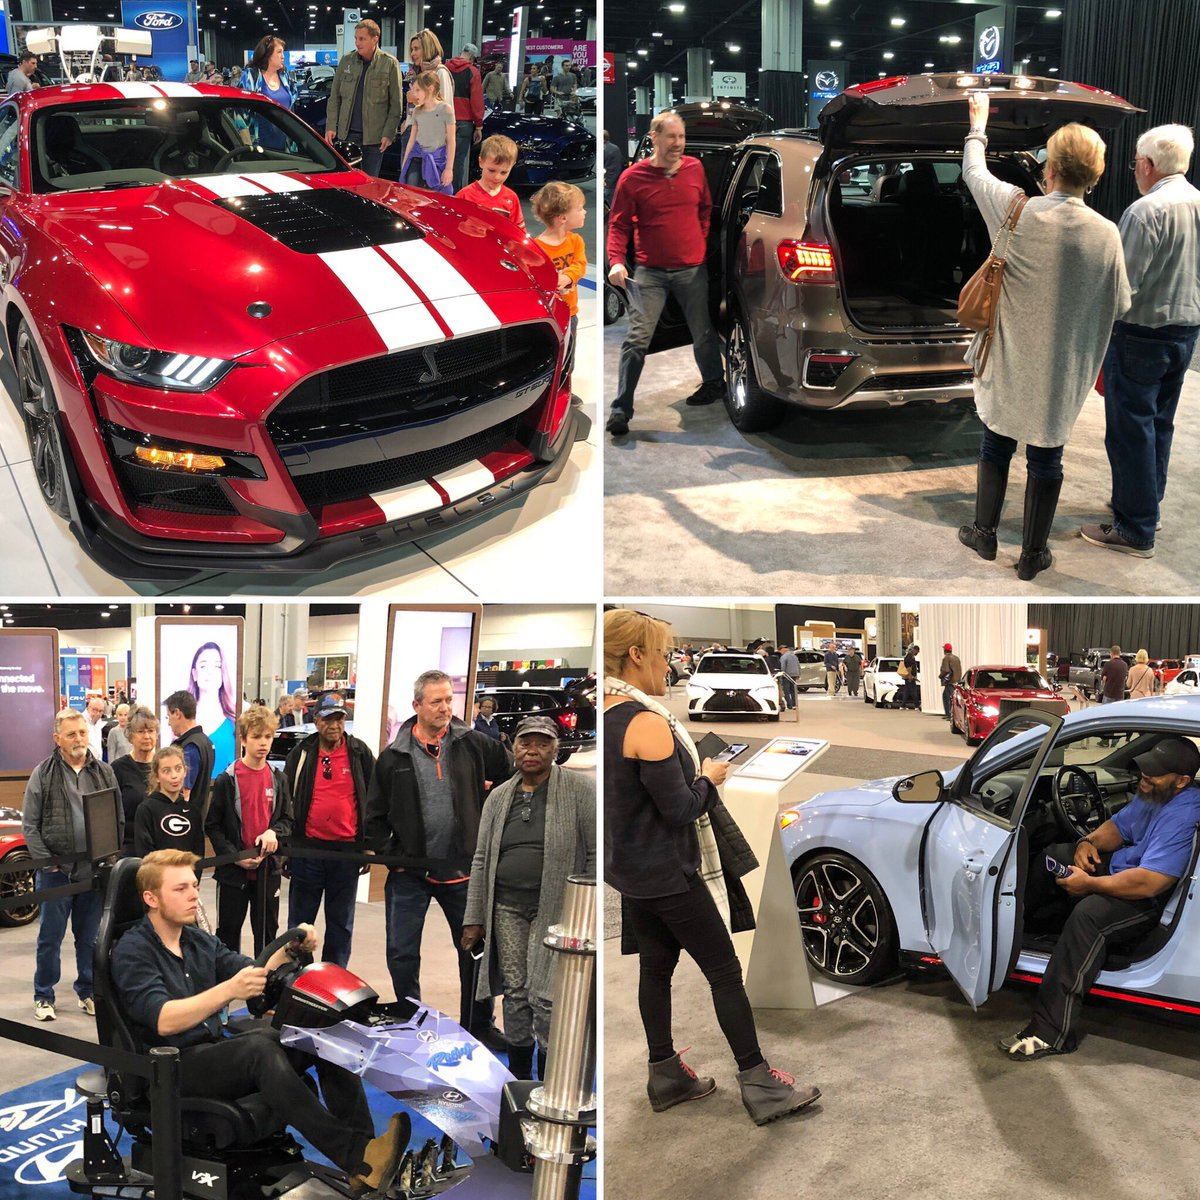 When are you coming to #AIAS19? What do you look forward to seeing the most? Tell us! http://GoAutoShow.com  | #Atlanta #AtlantasSpringThing #autoshow #familyevent